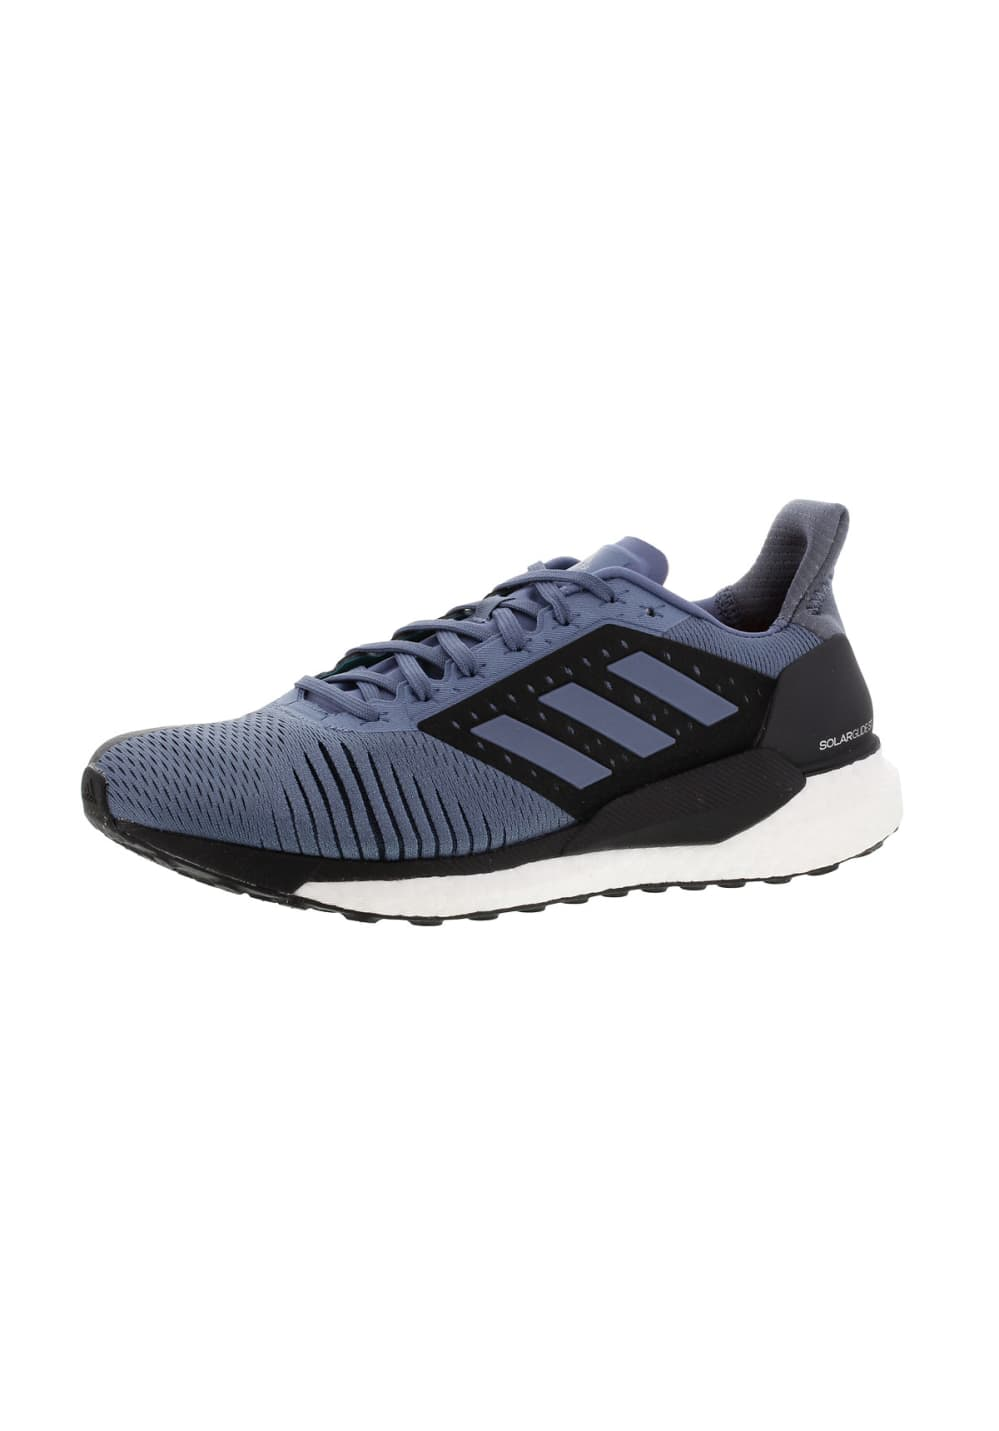 official photos c9473 0c6d7 Next. adidas. Solar Glide St - Chaussures running pour Homme